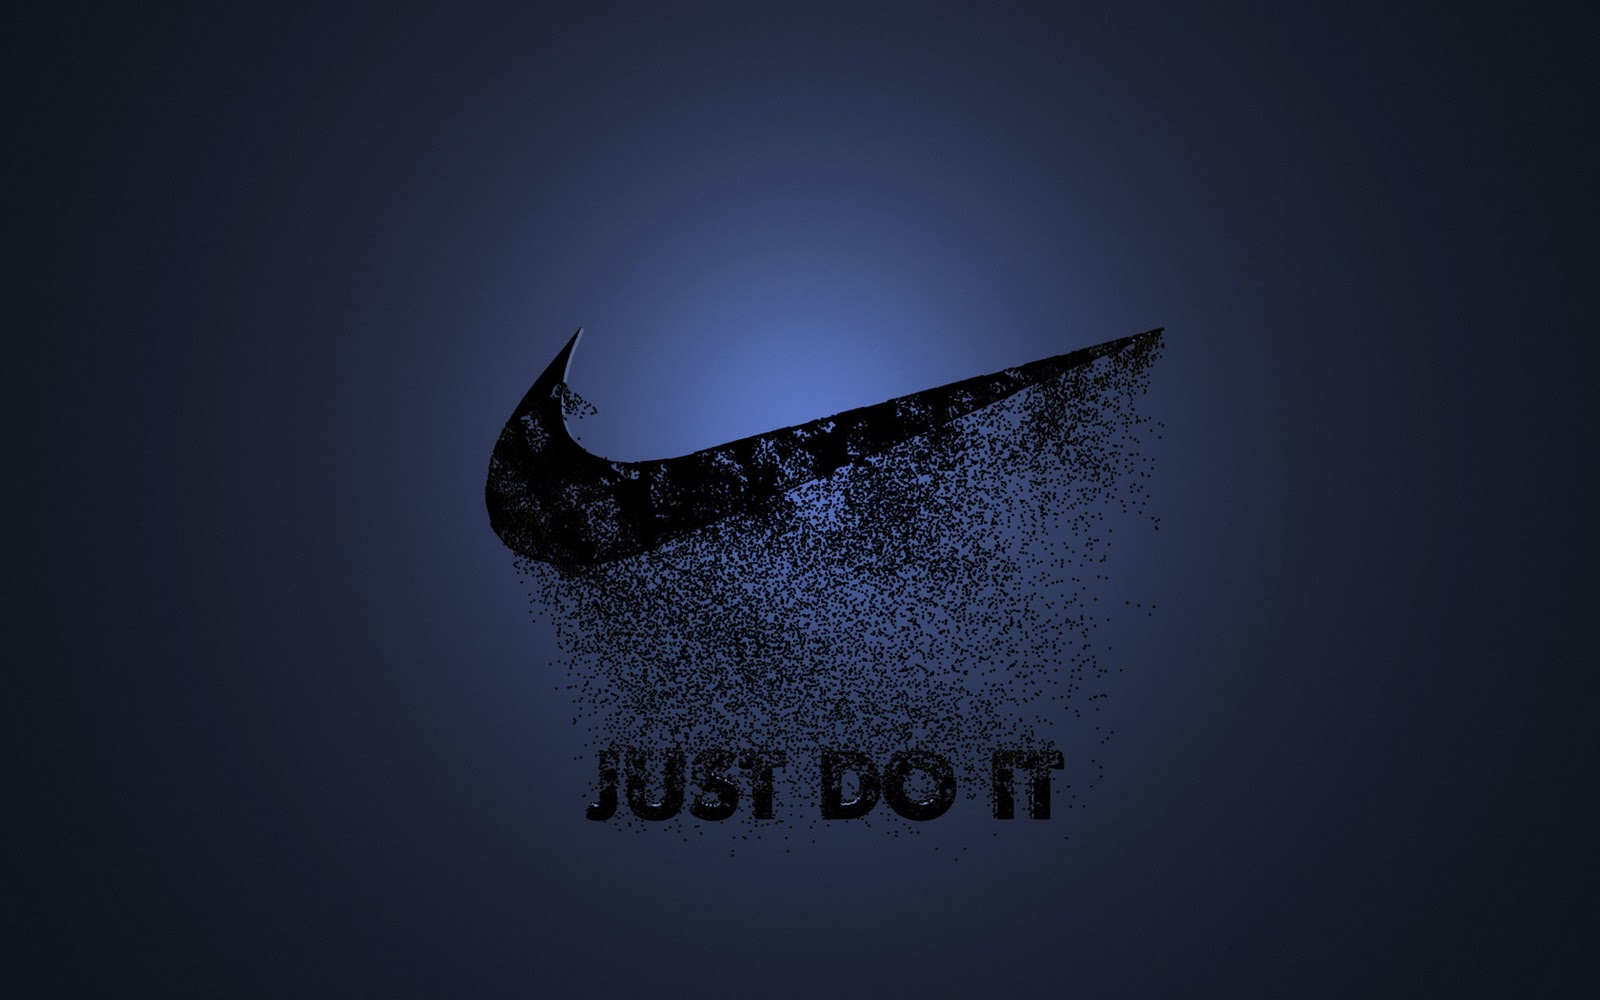 Nike Wallpapers Just Do It Wallpaper 1600x1000